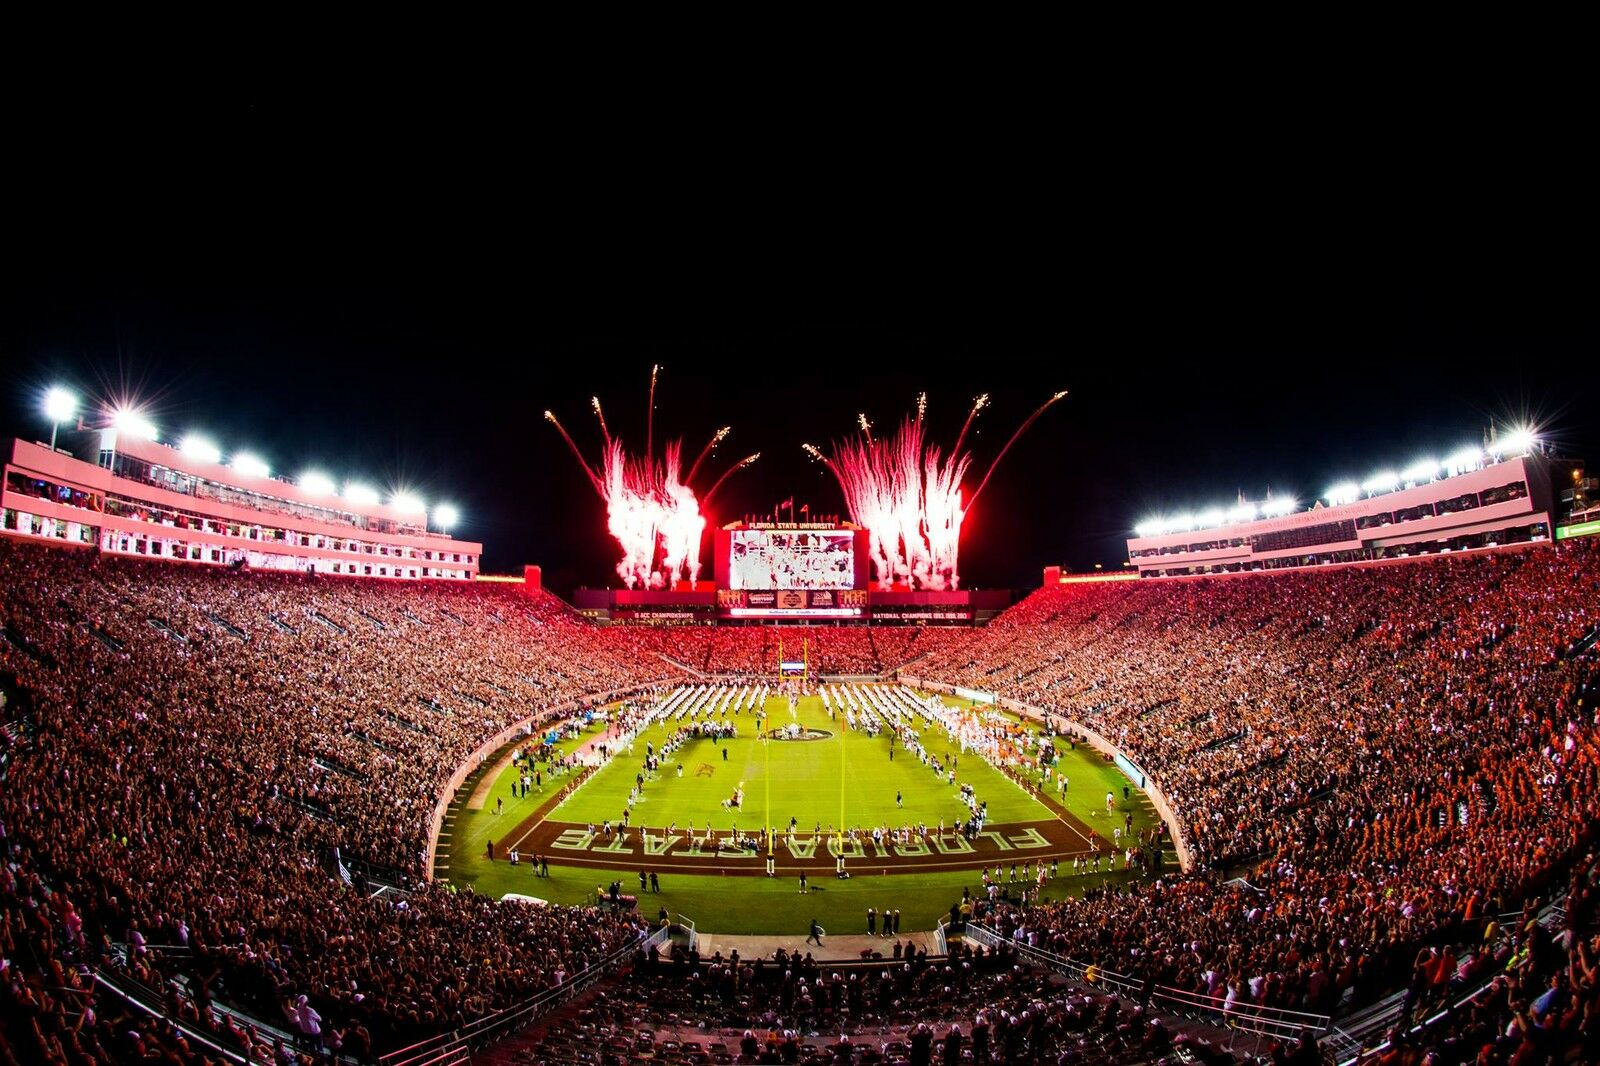 Virginia Tech Hokies at Florida State Seminoles Football